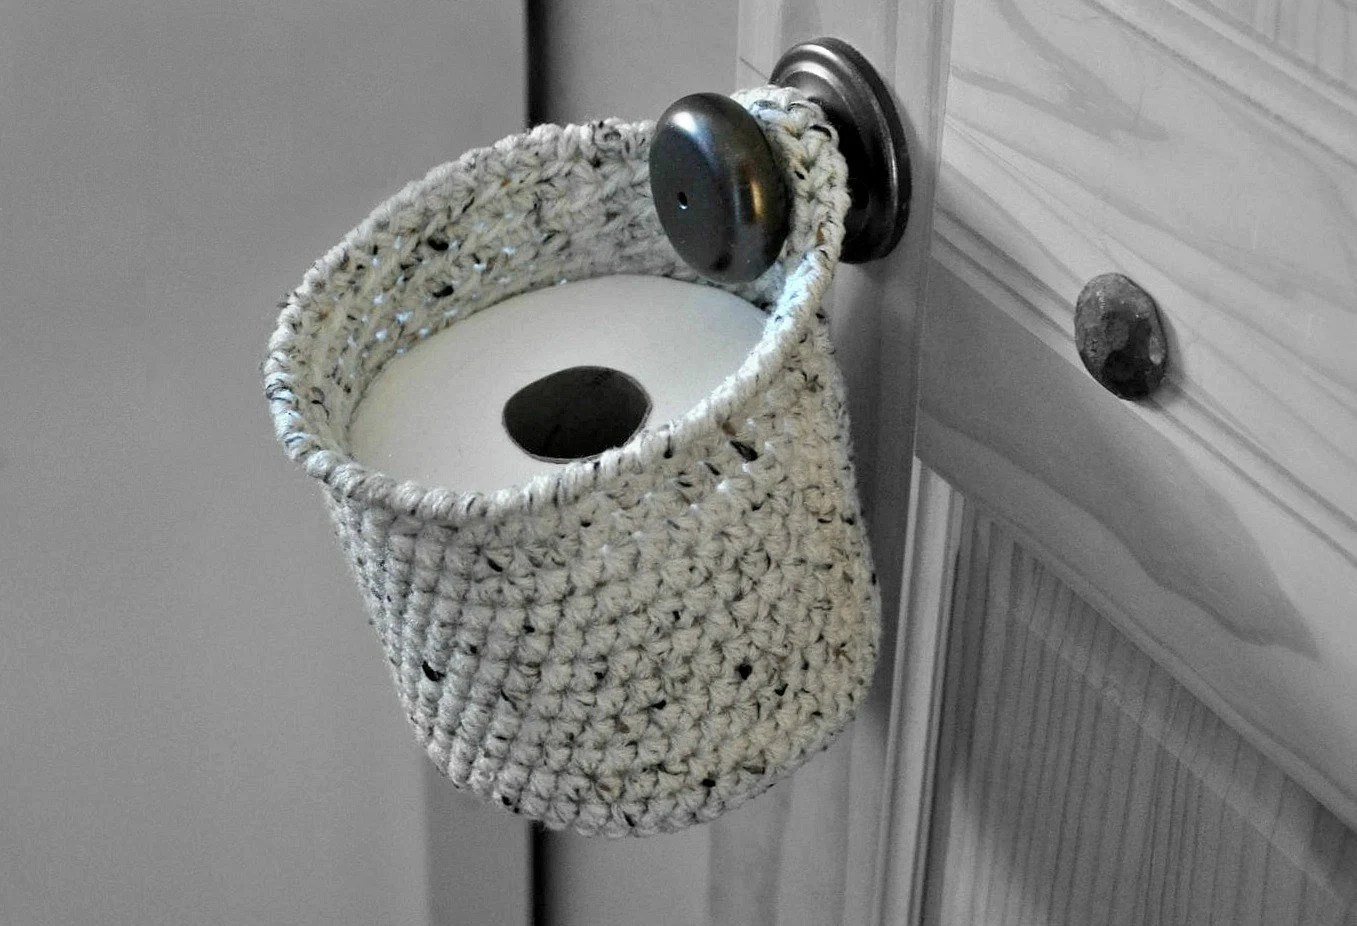 Space Saving Toilet Paper Holder Toilet Paper Holder Space Saver Door Knob Spare Roll Basket